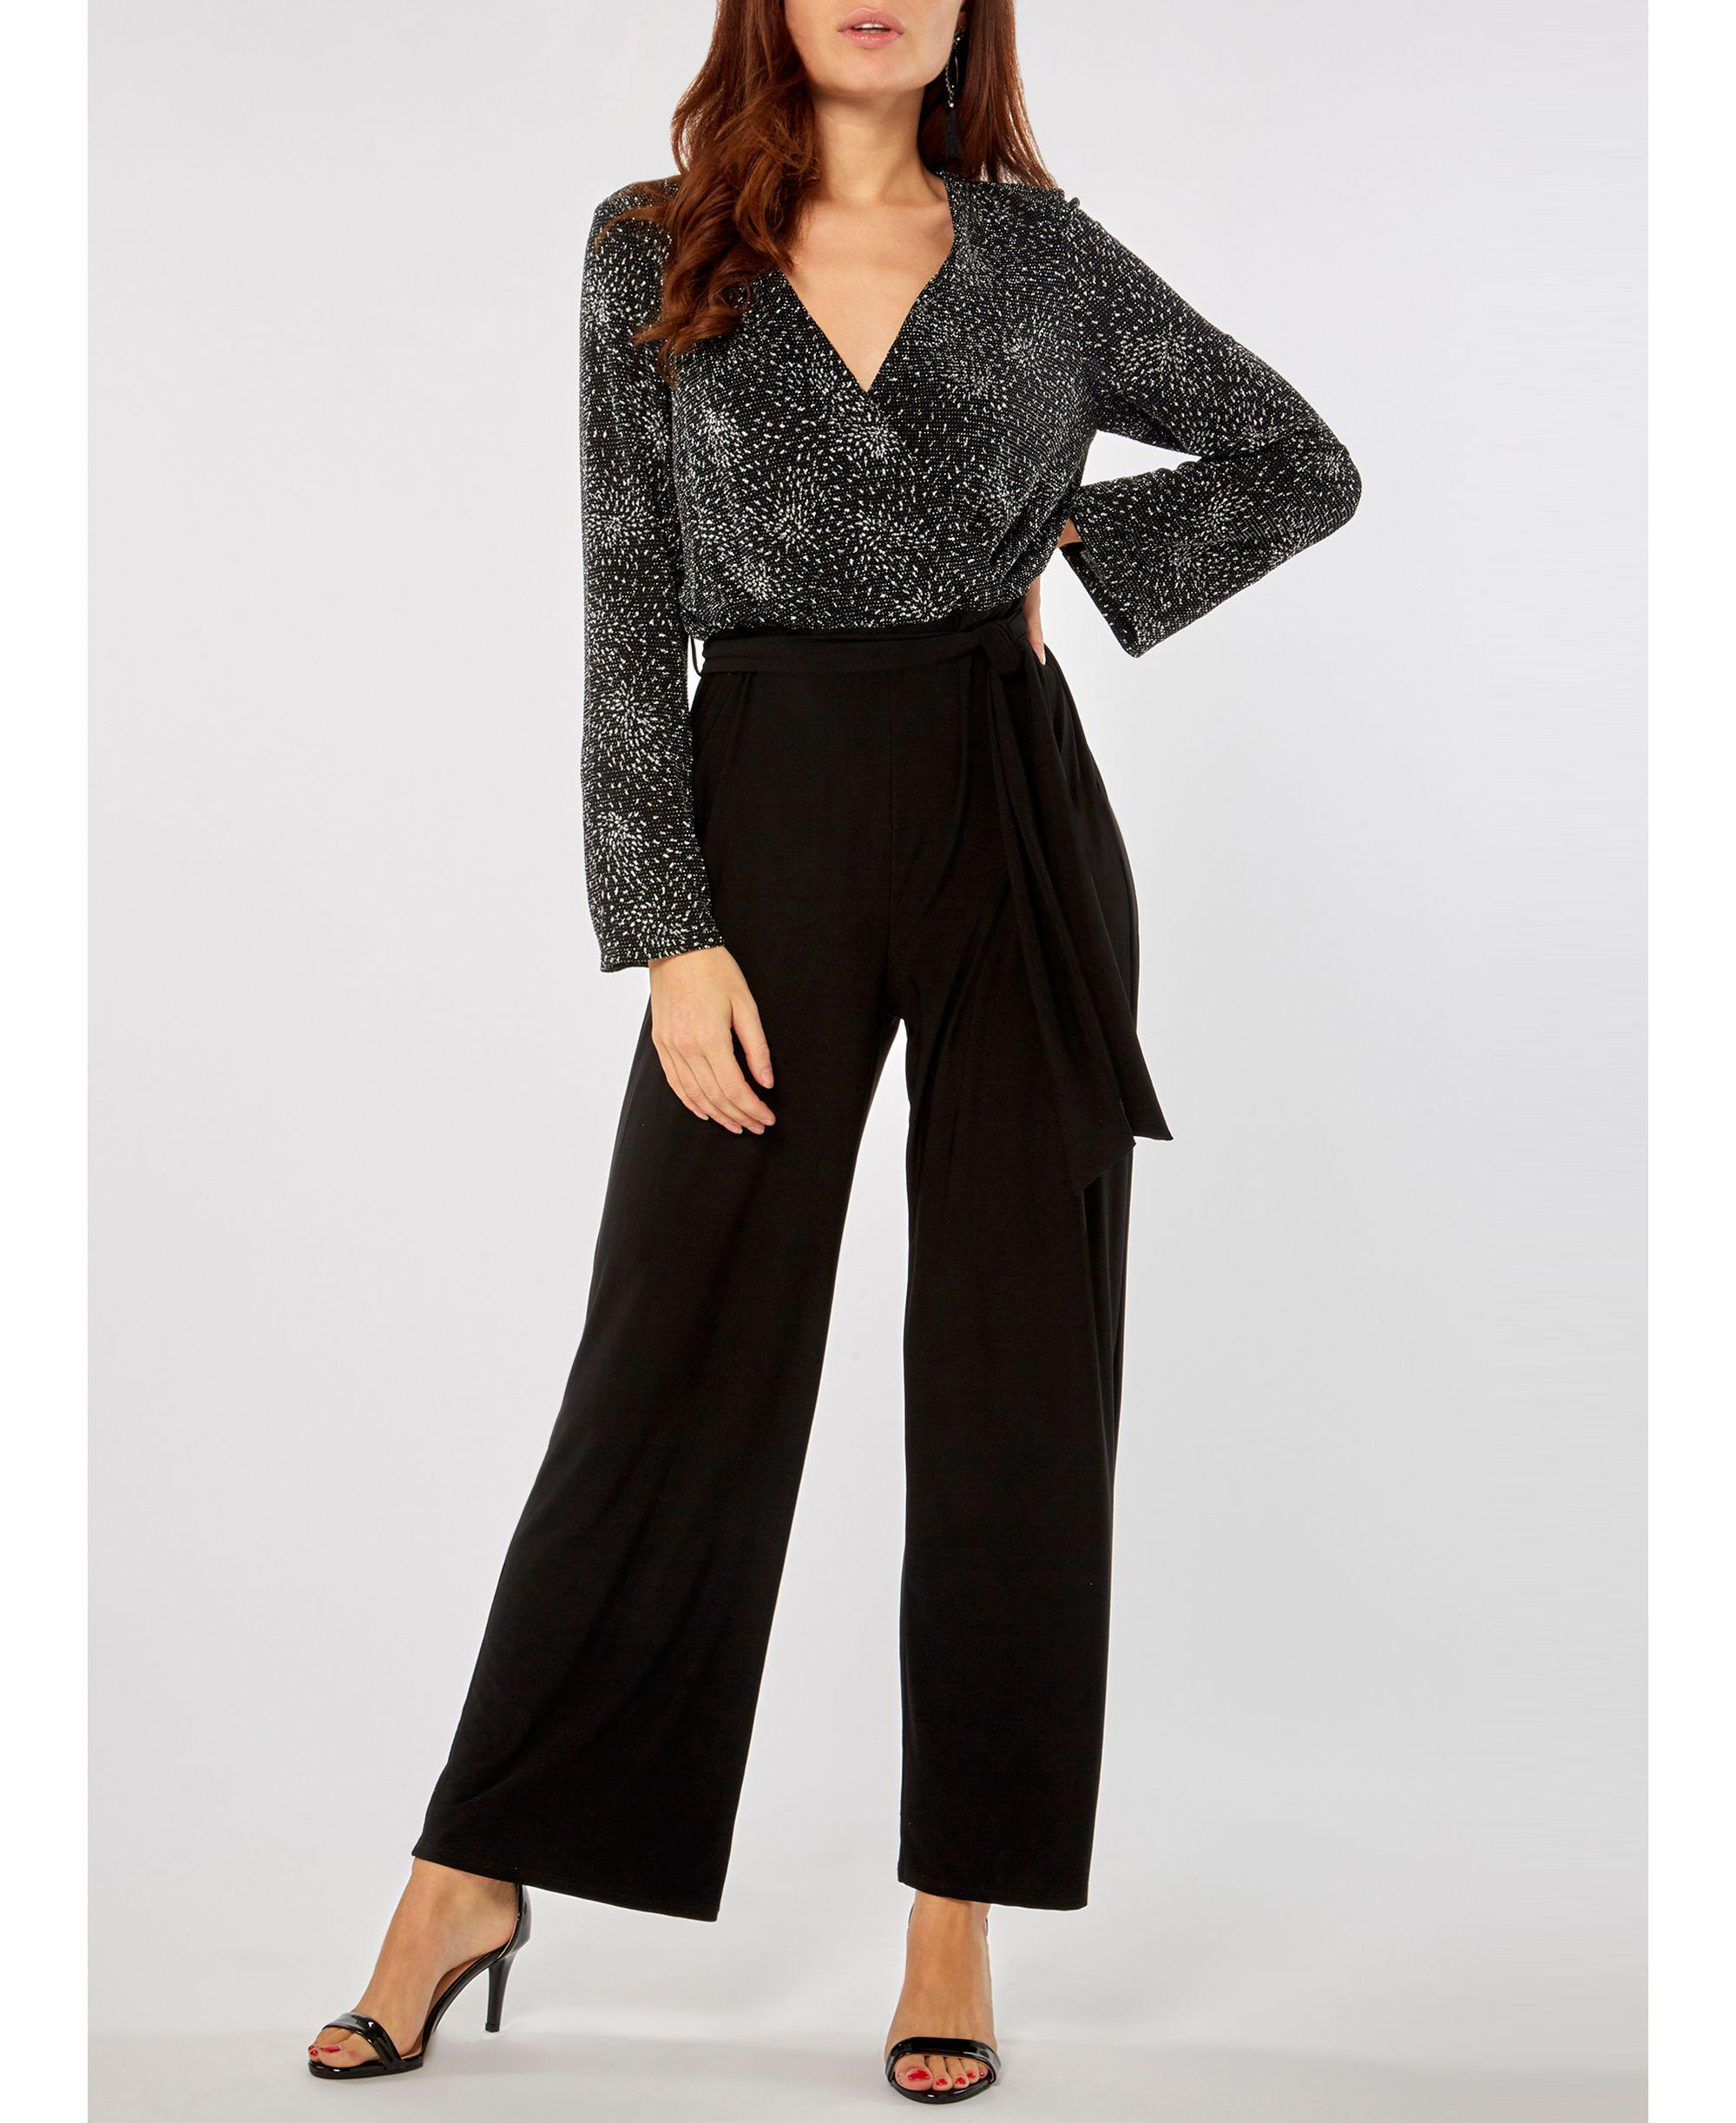 69cf0b3eee01 Dorothy Perkins Black And Sliver Glitter Top Jumpsuit in Black - Lyst